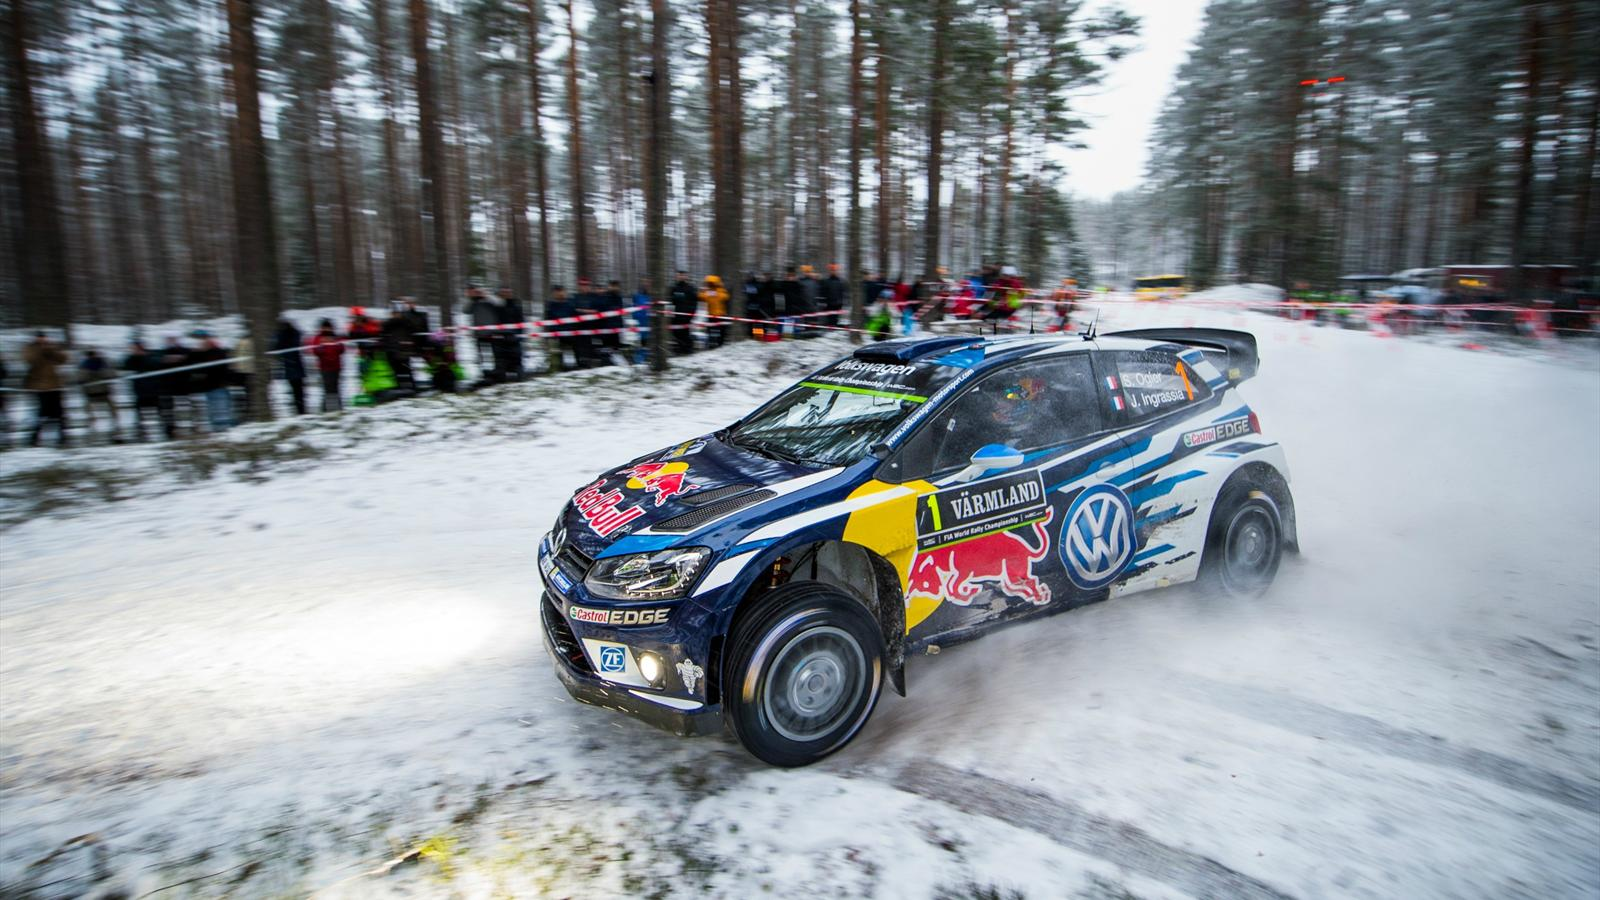 vainqueur en su de s bastien ogier volkswagen poursuit son d but de saison parfait rallye. Black Bedroom Furniture Sets. Home Design Ideas